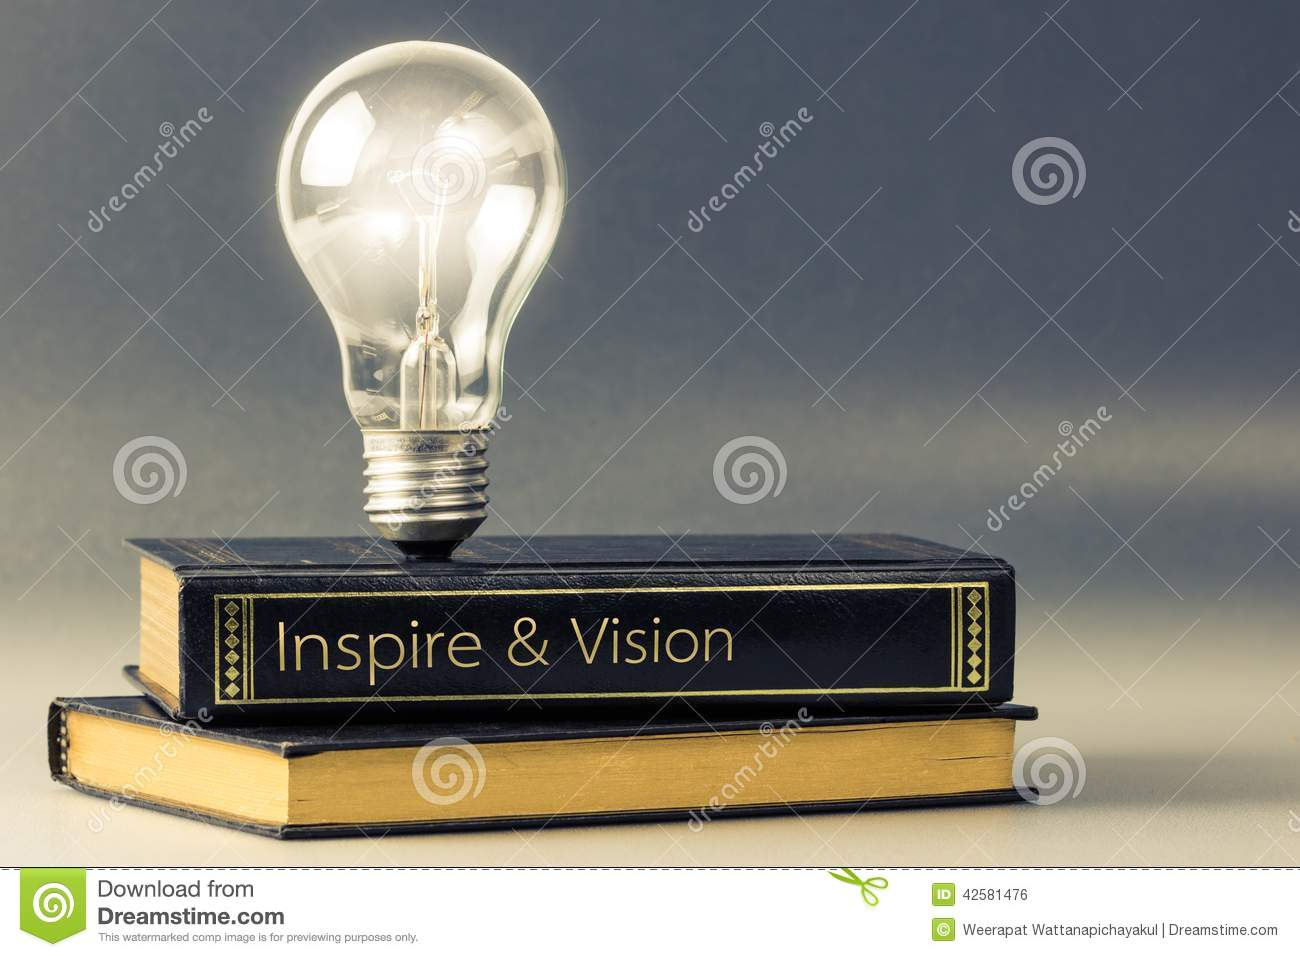 Inspire and vision